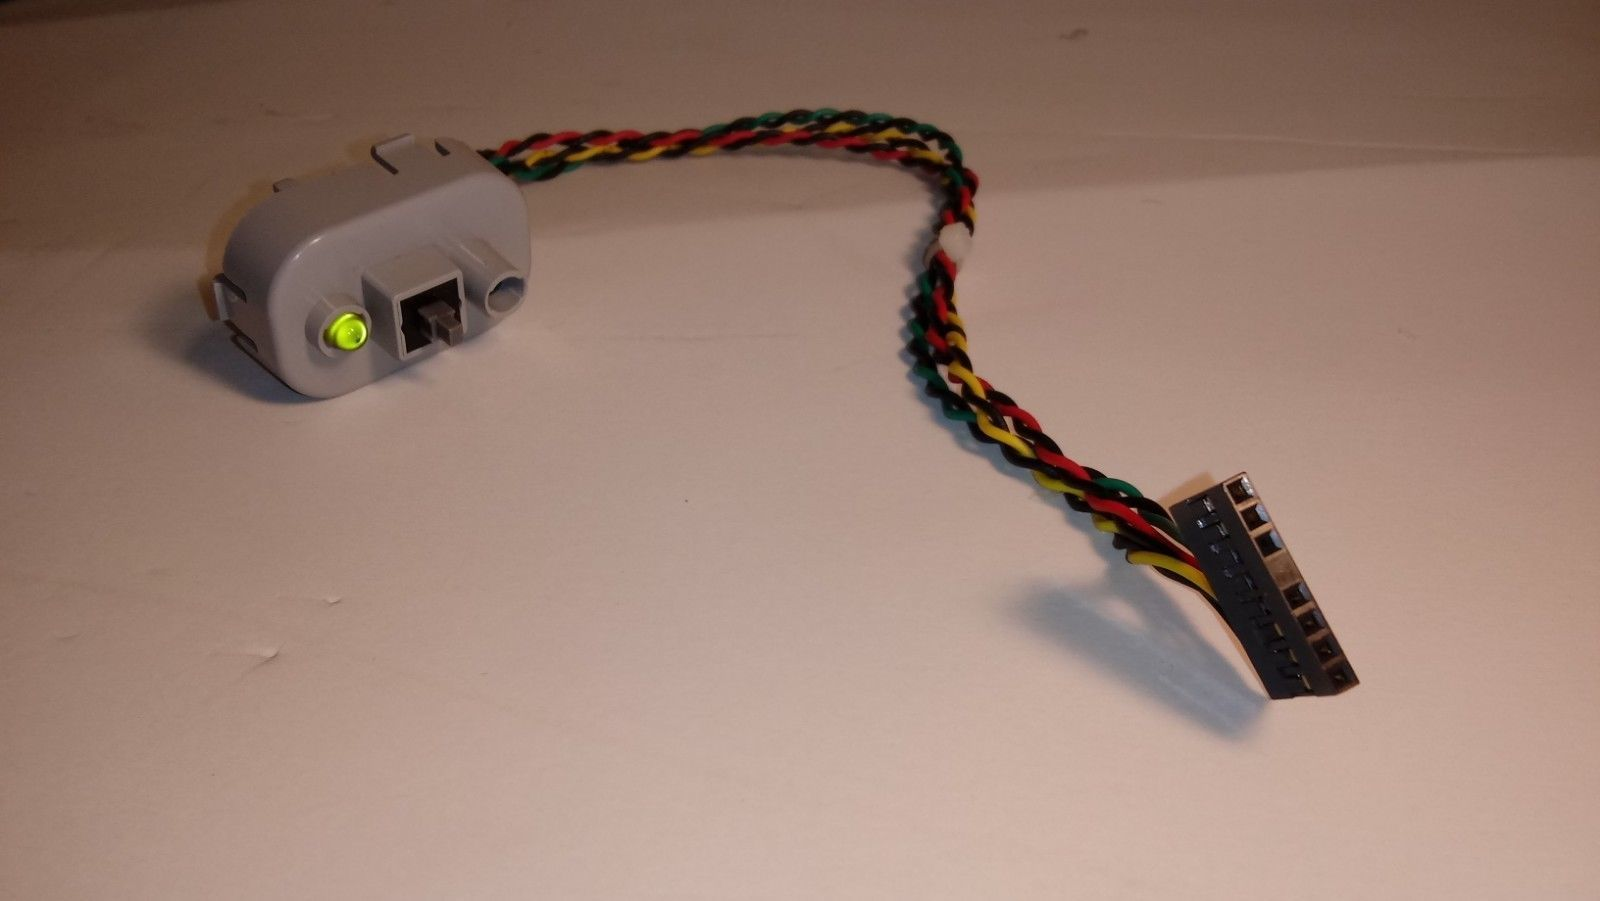 HP 5066-0591 Power SW/LED Power Switch and 40 similar items